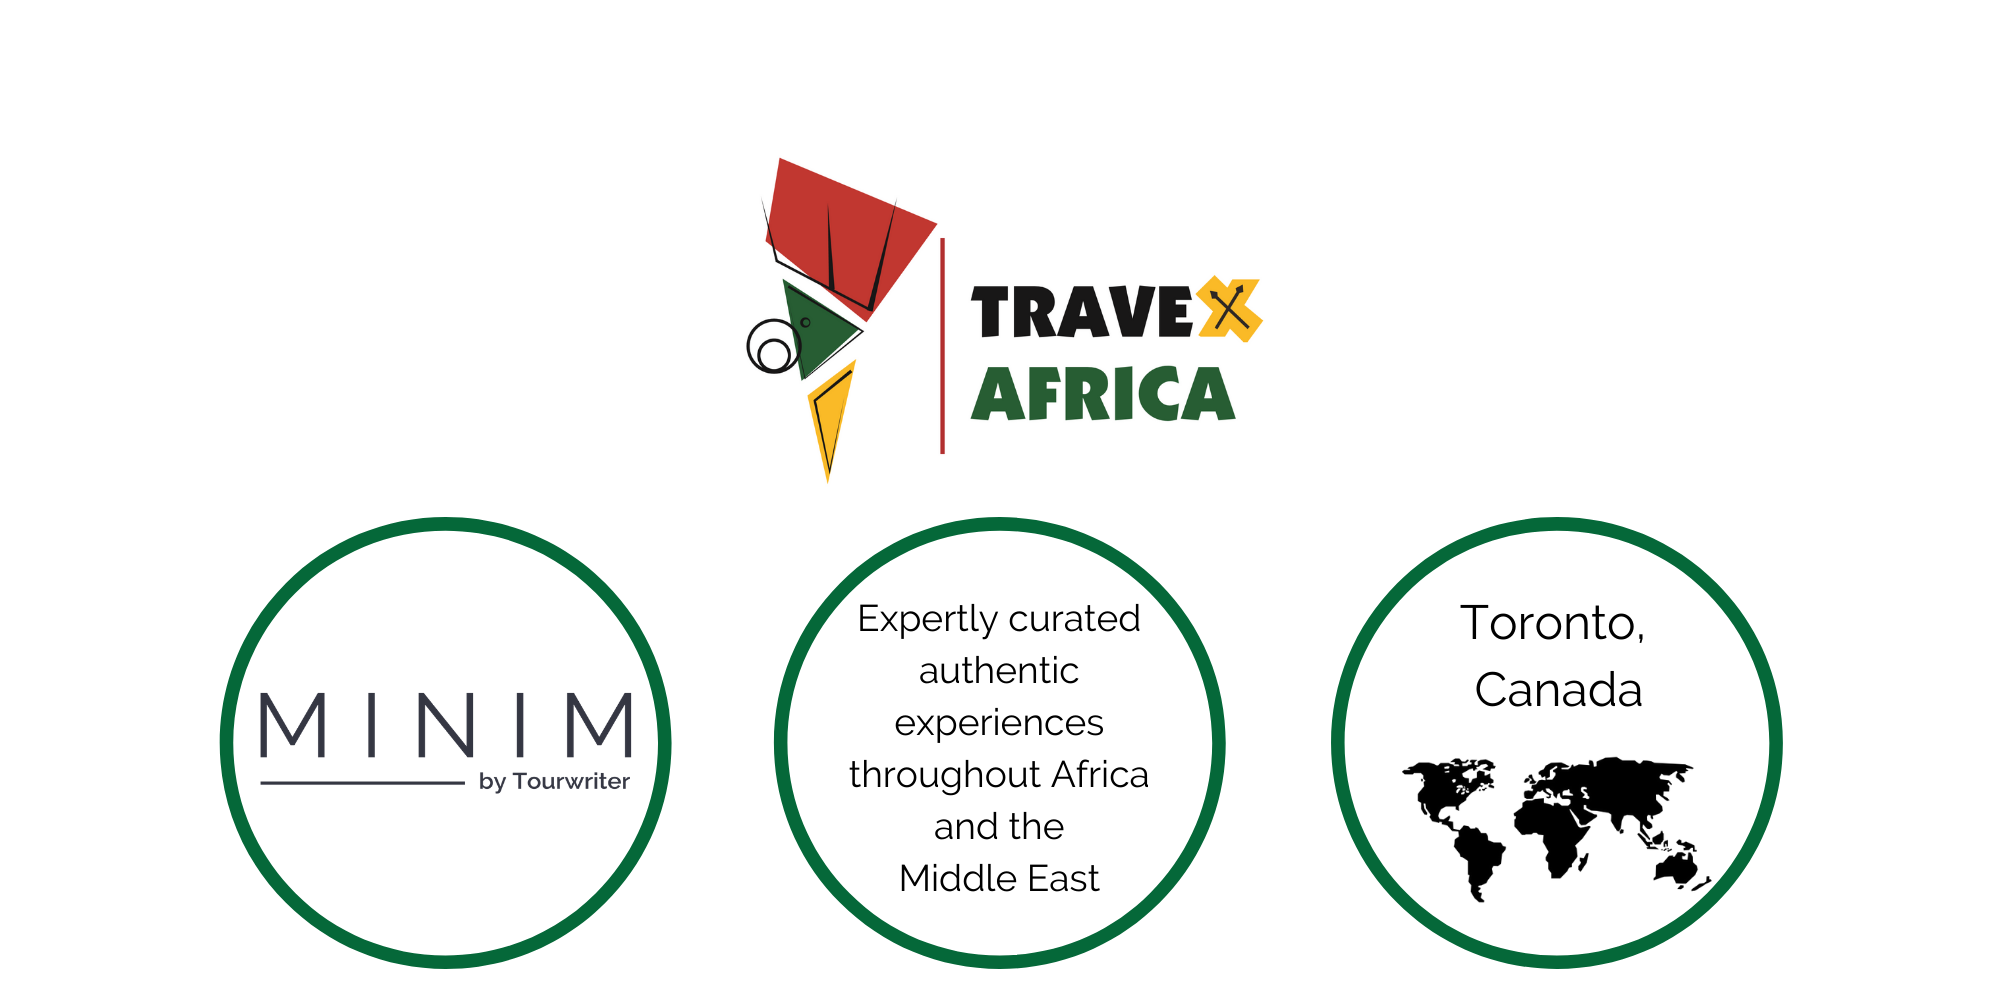 Travex Africa itinerary builder software story